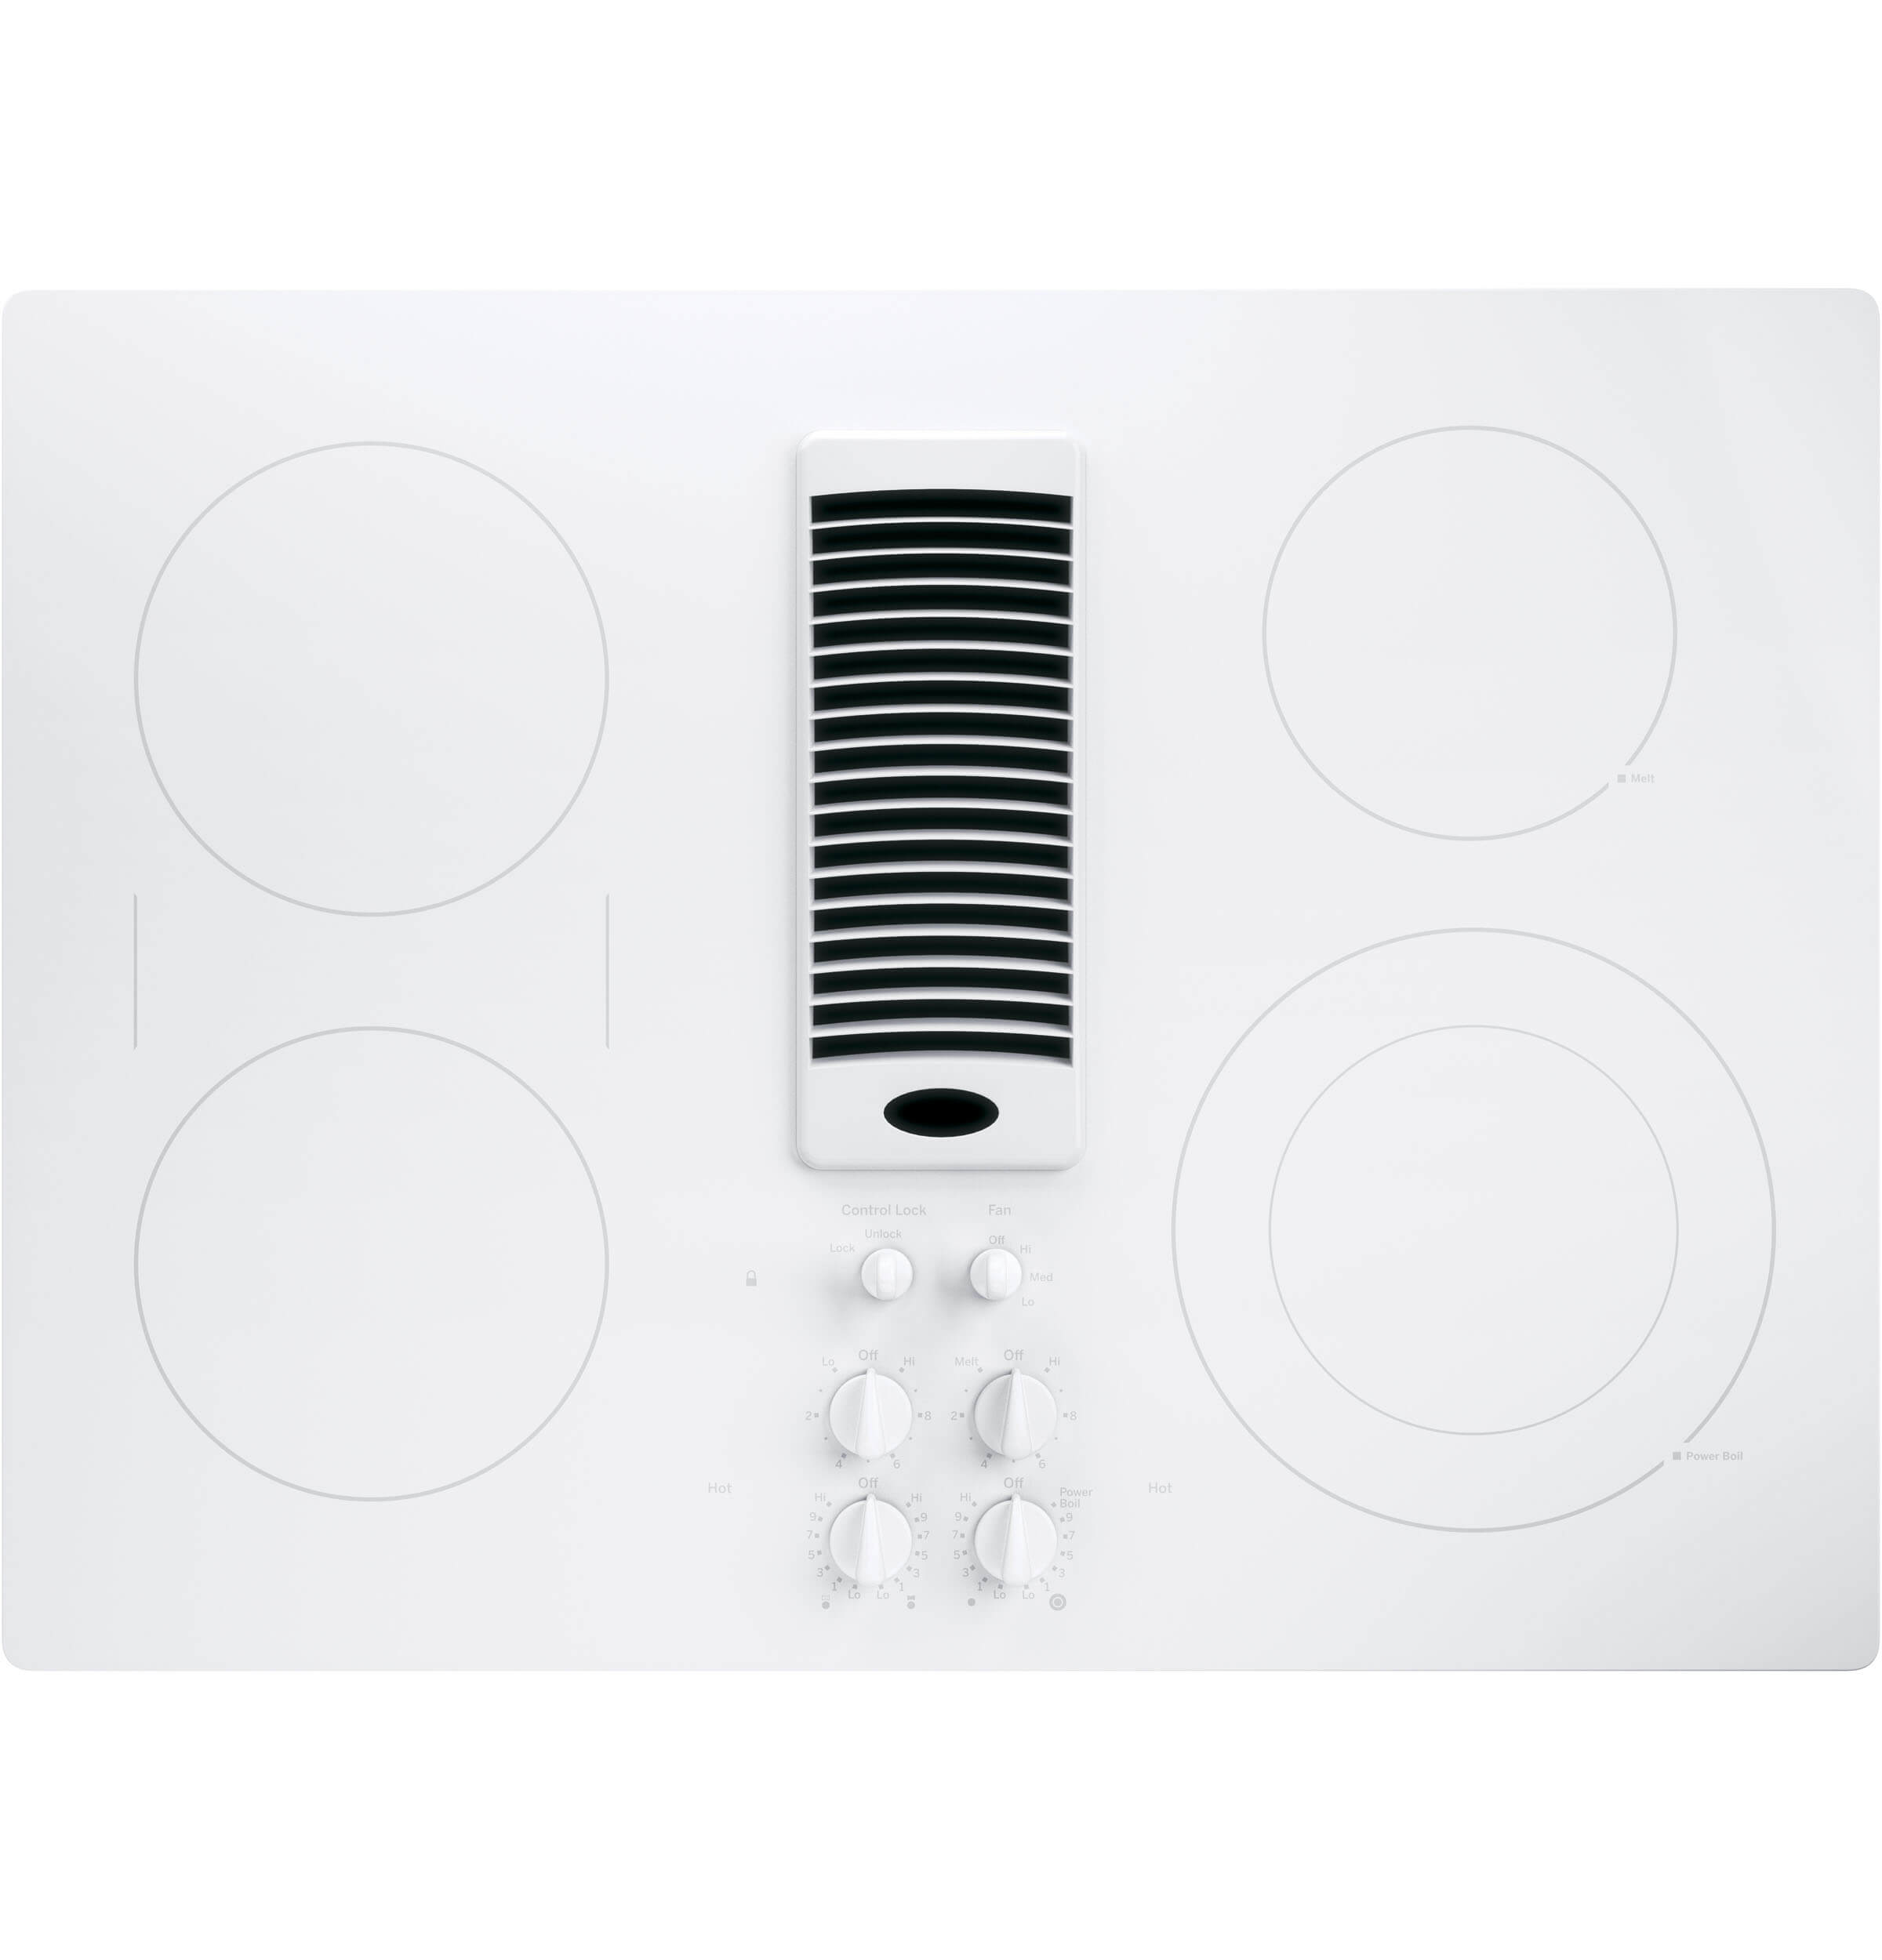 White Profile Series 30 inch Downdraft Electric Cooktop